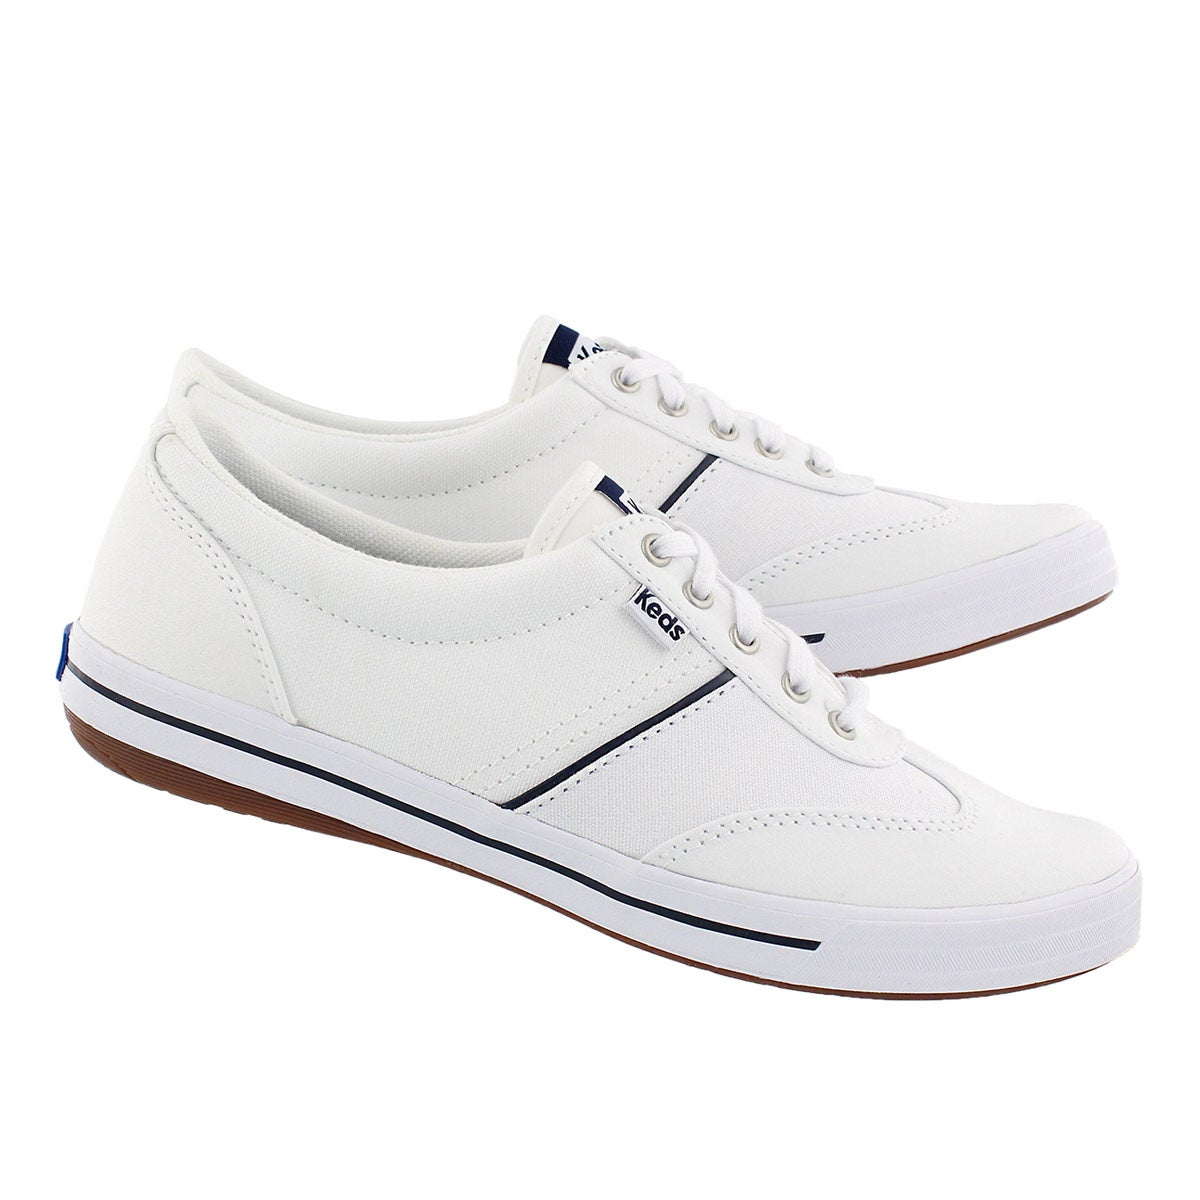 Lds Craze II white lace up sneaker